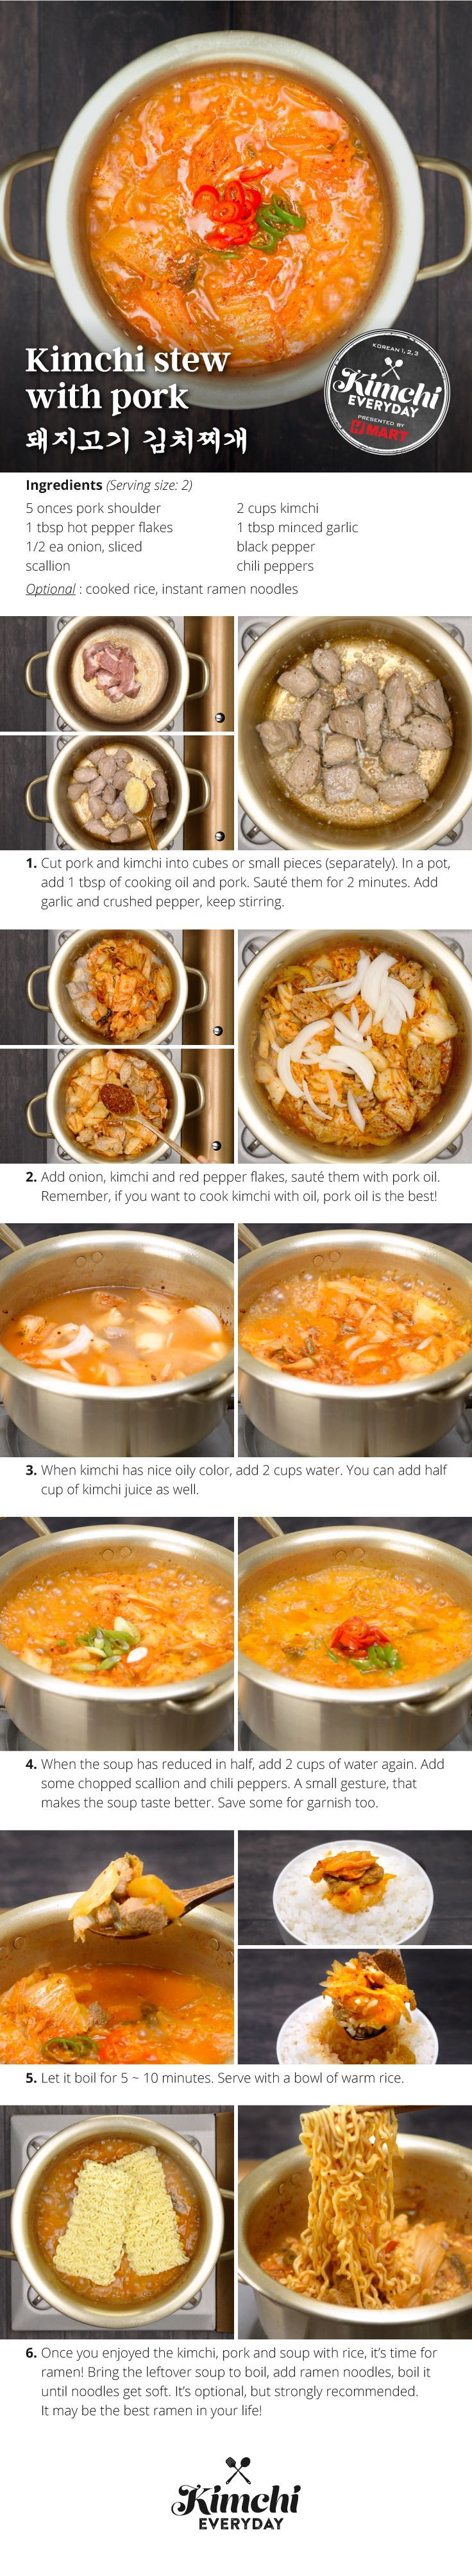 153 best korean food recipes images on pinterest korean food hmart presents how to make delicious kimchi stew with pork forumfinder Image collections